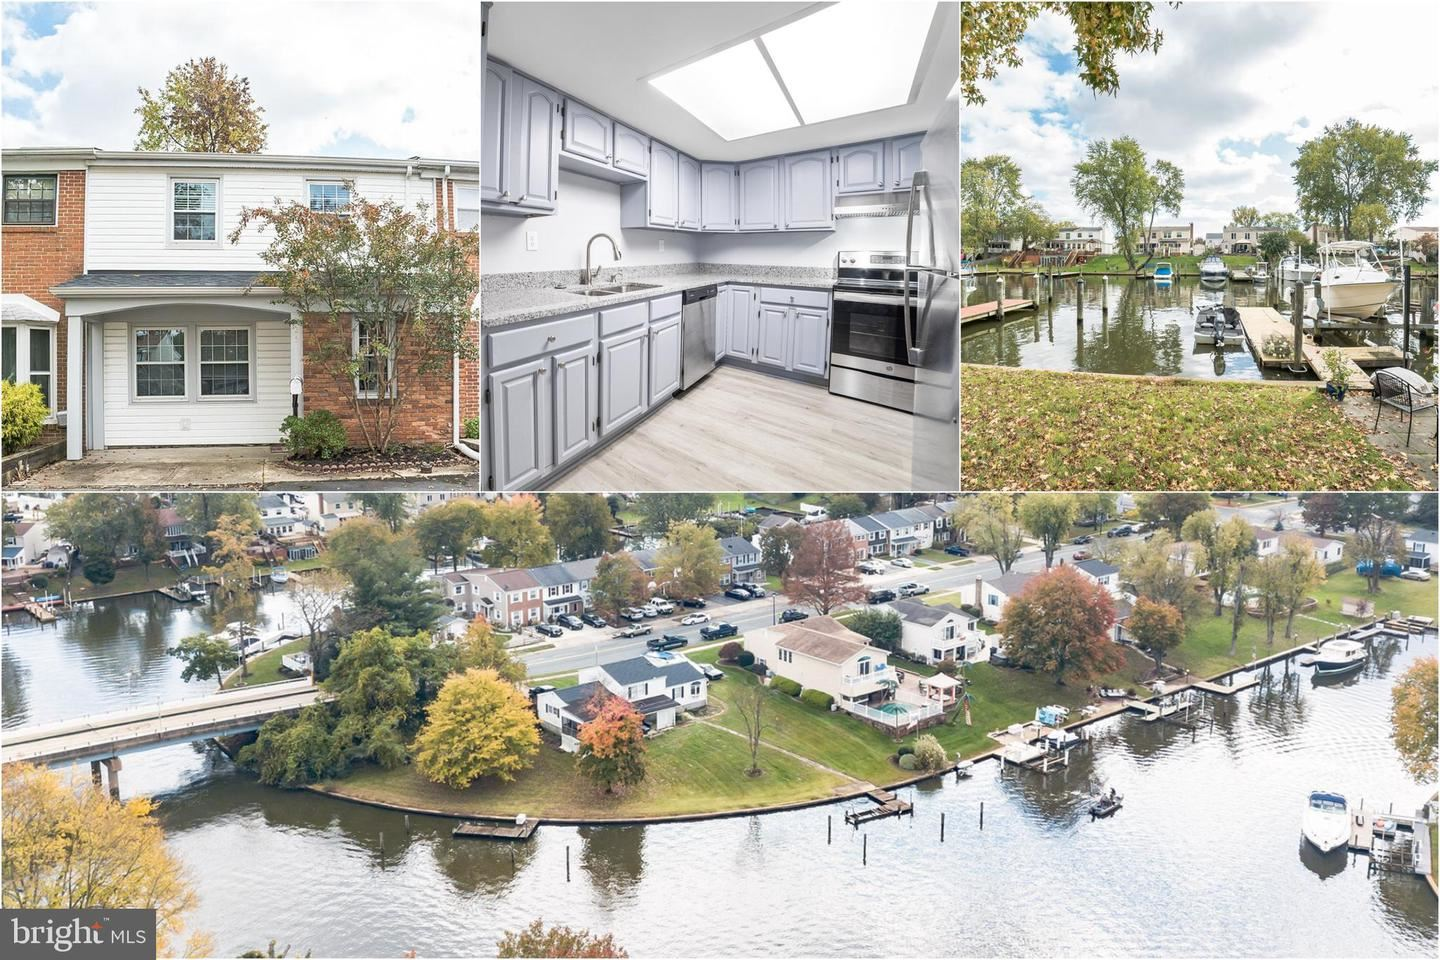 225 BRIDGE DR, Joppa, MD 21085 - MLS#: MDHR253558